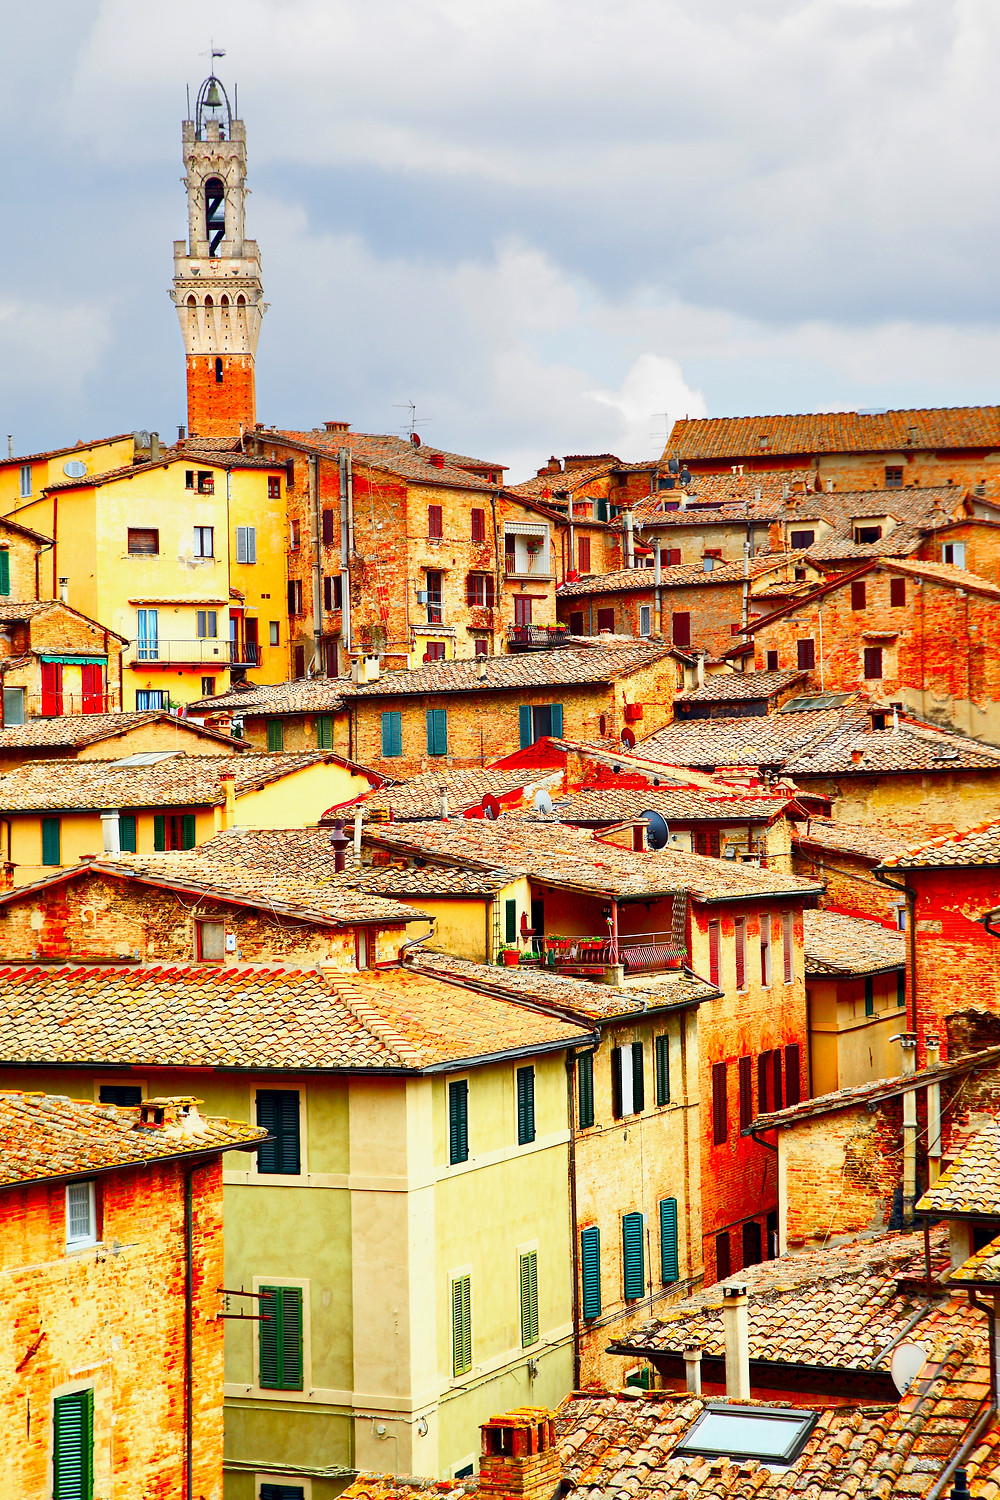 beautiful rustic yellow and orange homes in medieval Siena